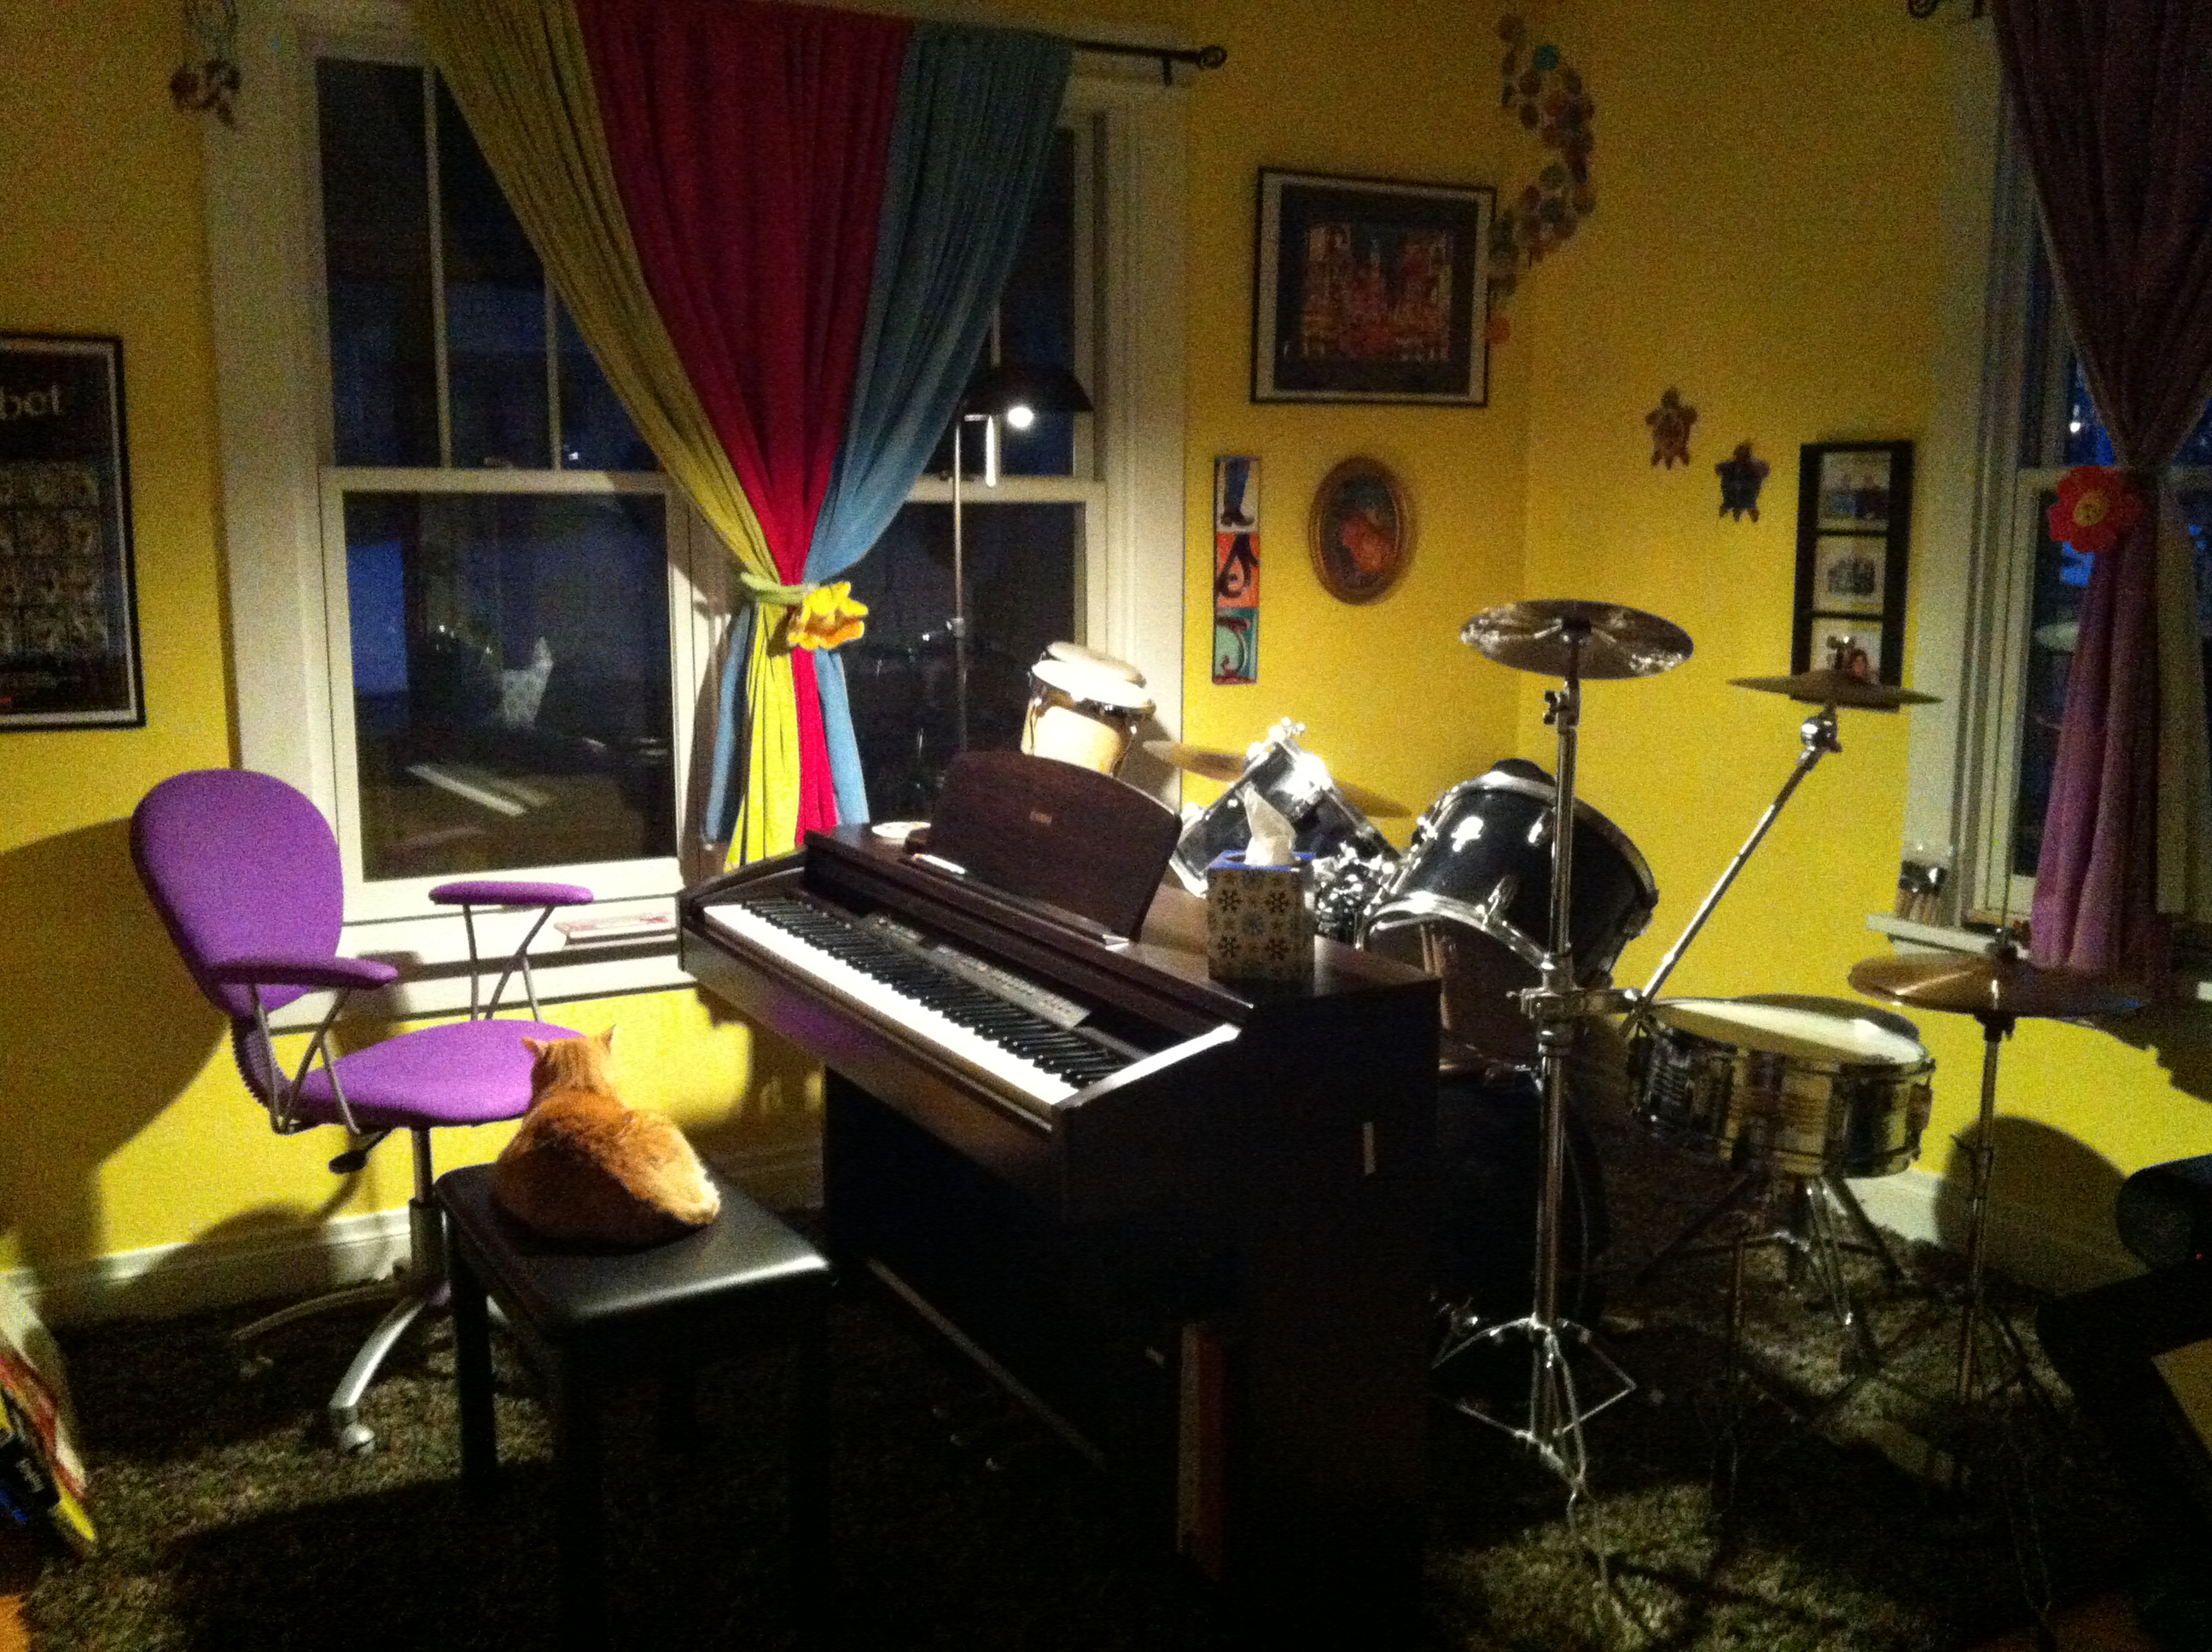 Groovy Pictures Of My New Music Studio All Ready For Students Going Solo Largest Home Design Picture Inspirations Pitcheantrous